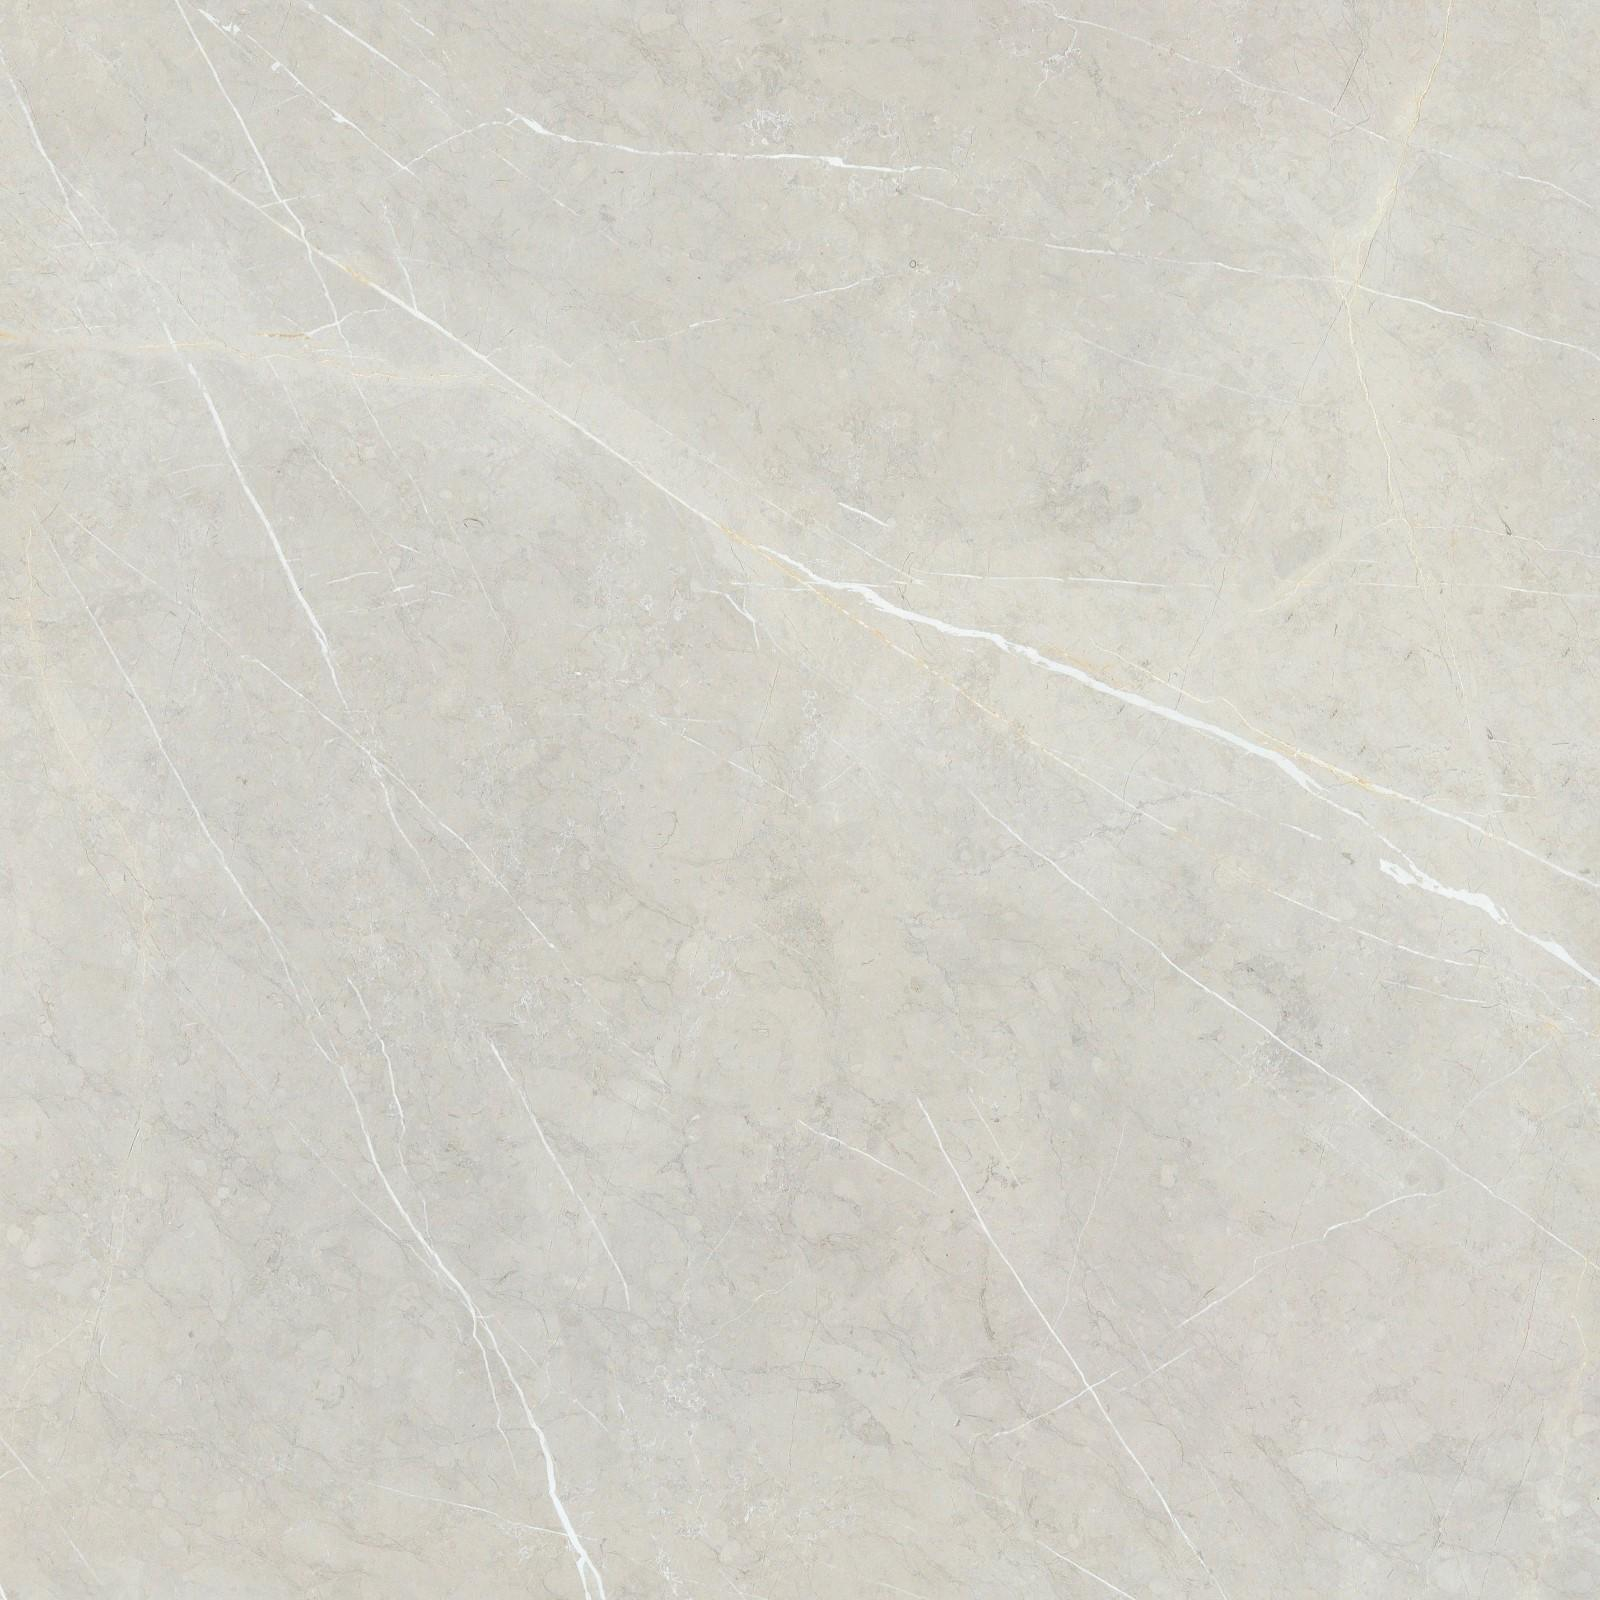 shower black and white marble tile ceramic directly price for outdoor-1